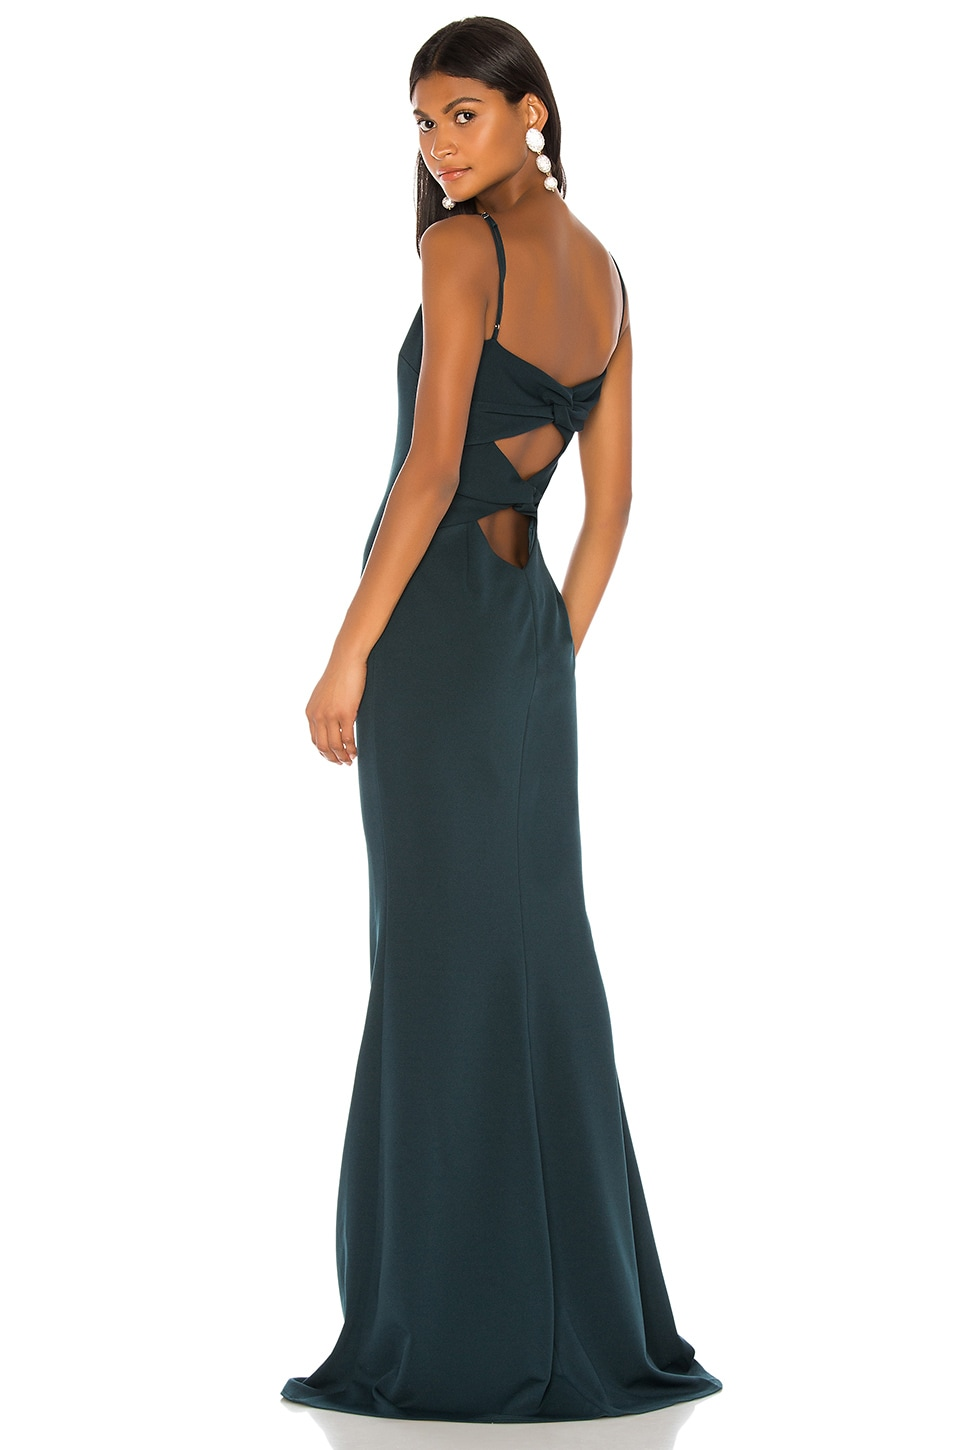 Katie May Forget Me Knot Dress in Dark Emerald